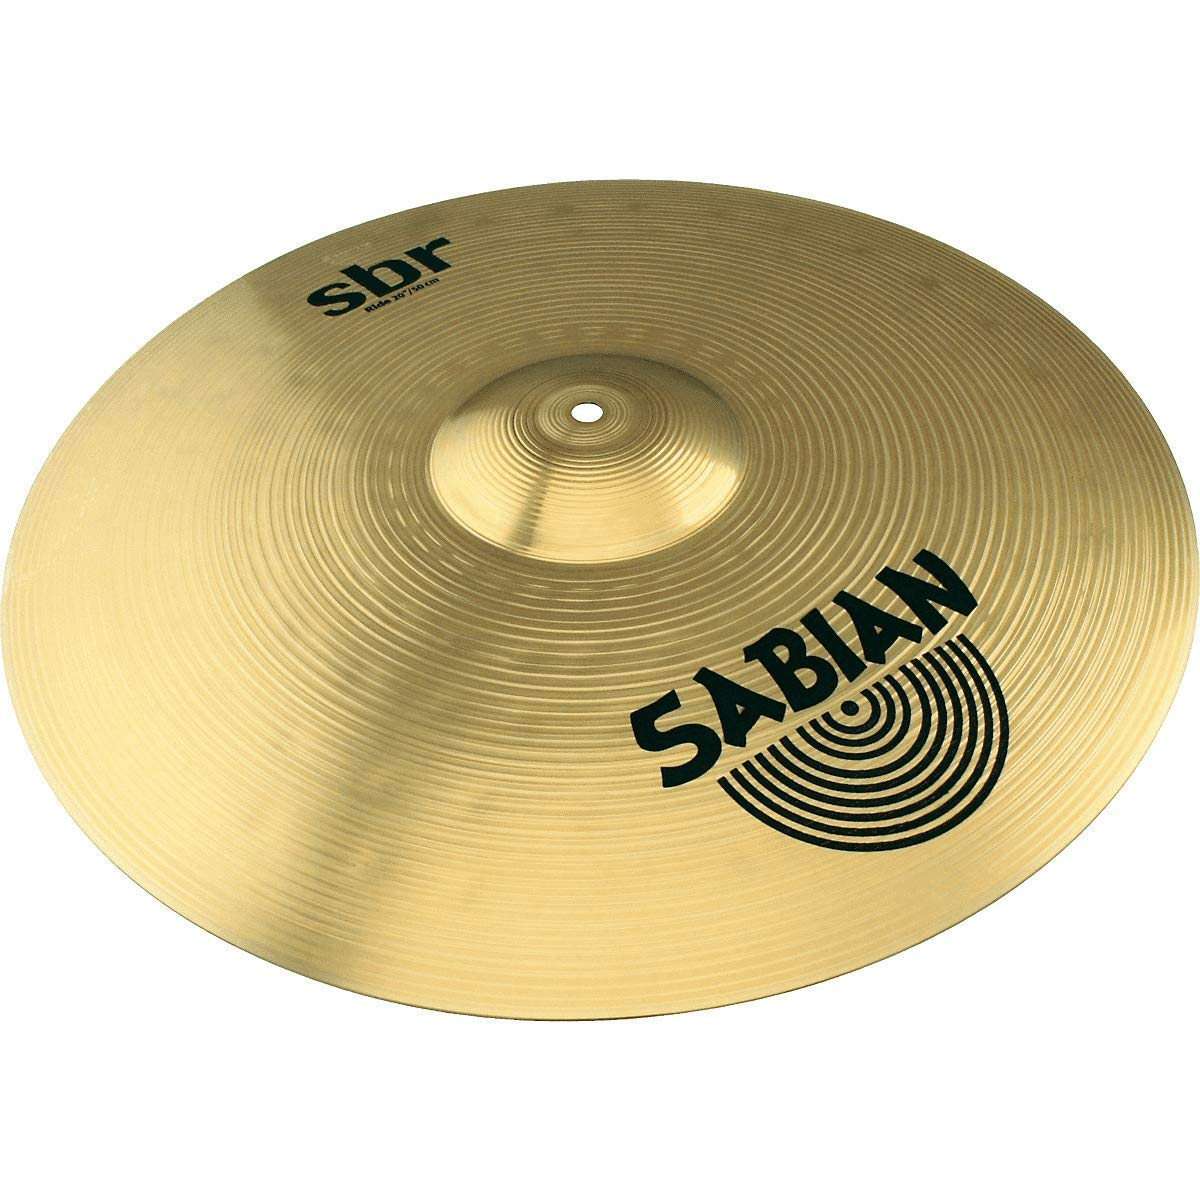 16-Inch Crash and 20-Inch Ride Cymbals Sabian SBR Performance Pack with 14-Inch Hat